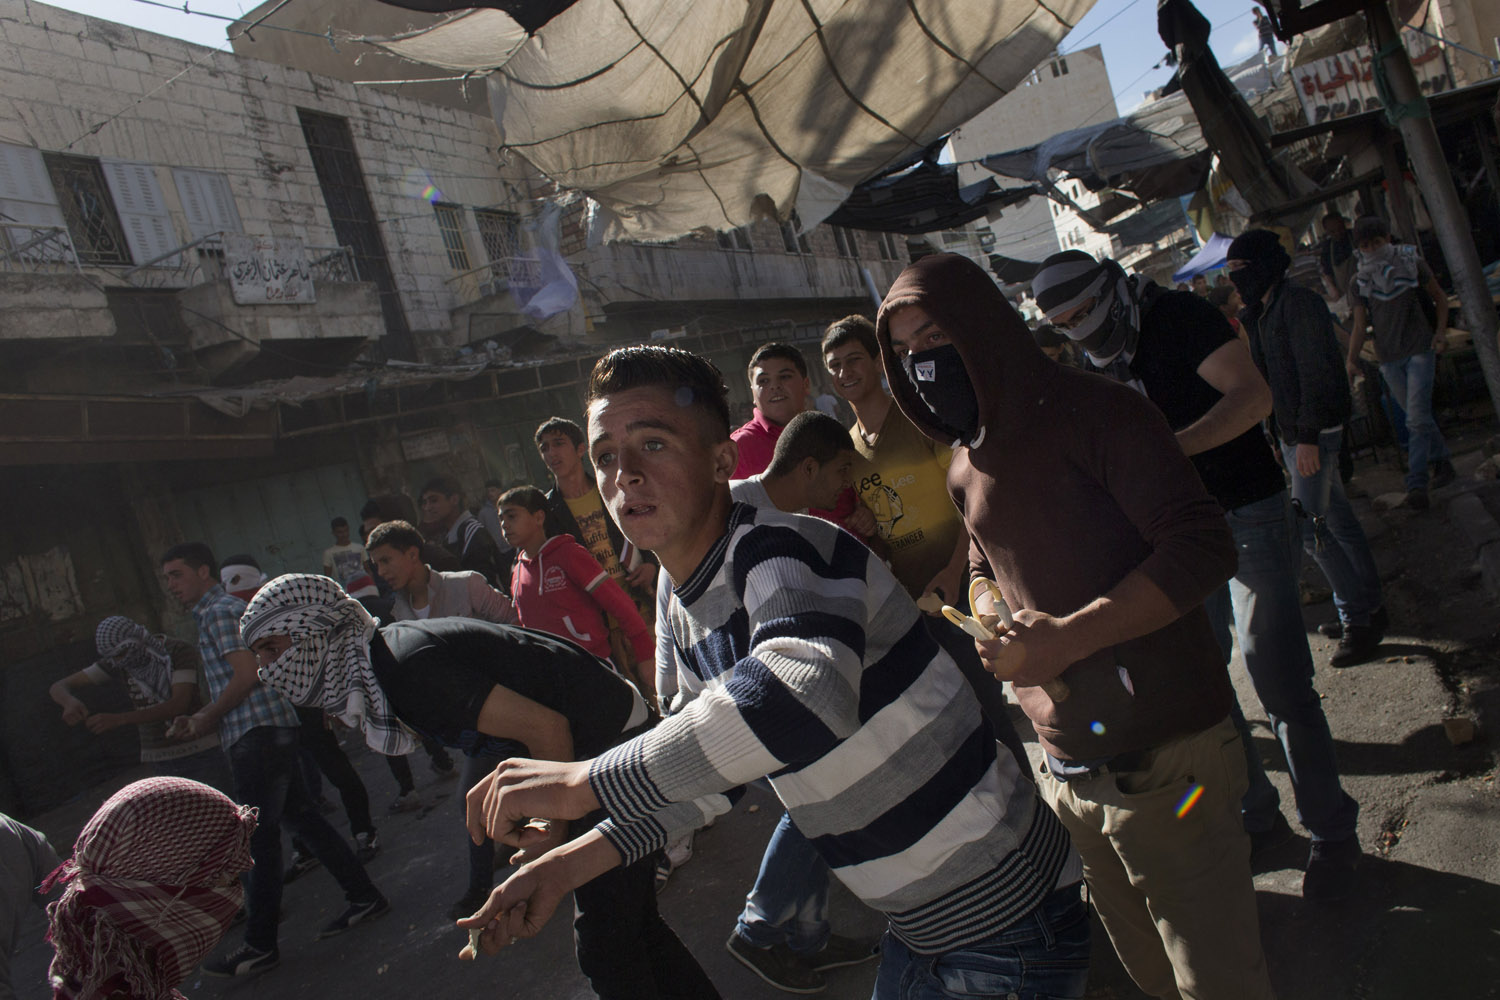 Sept. 23, 2013. Palestinians throw stones toward Israeli soldiers, not pictured, in the West Bank city of Hebron.